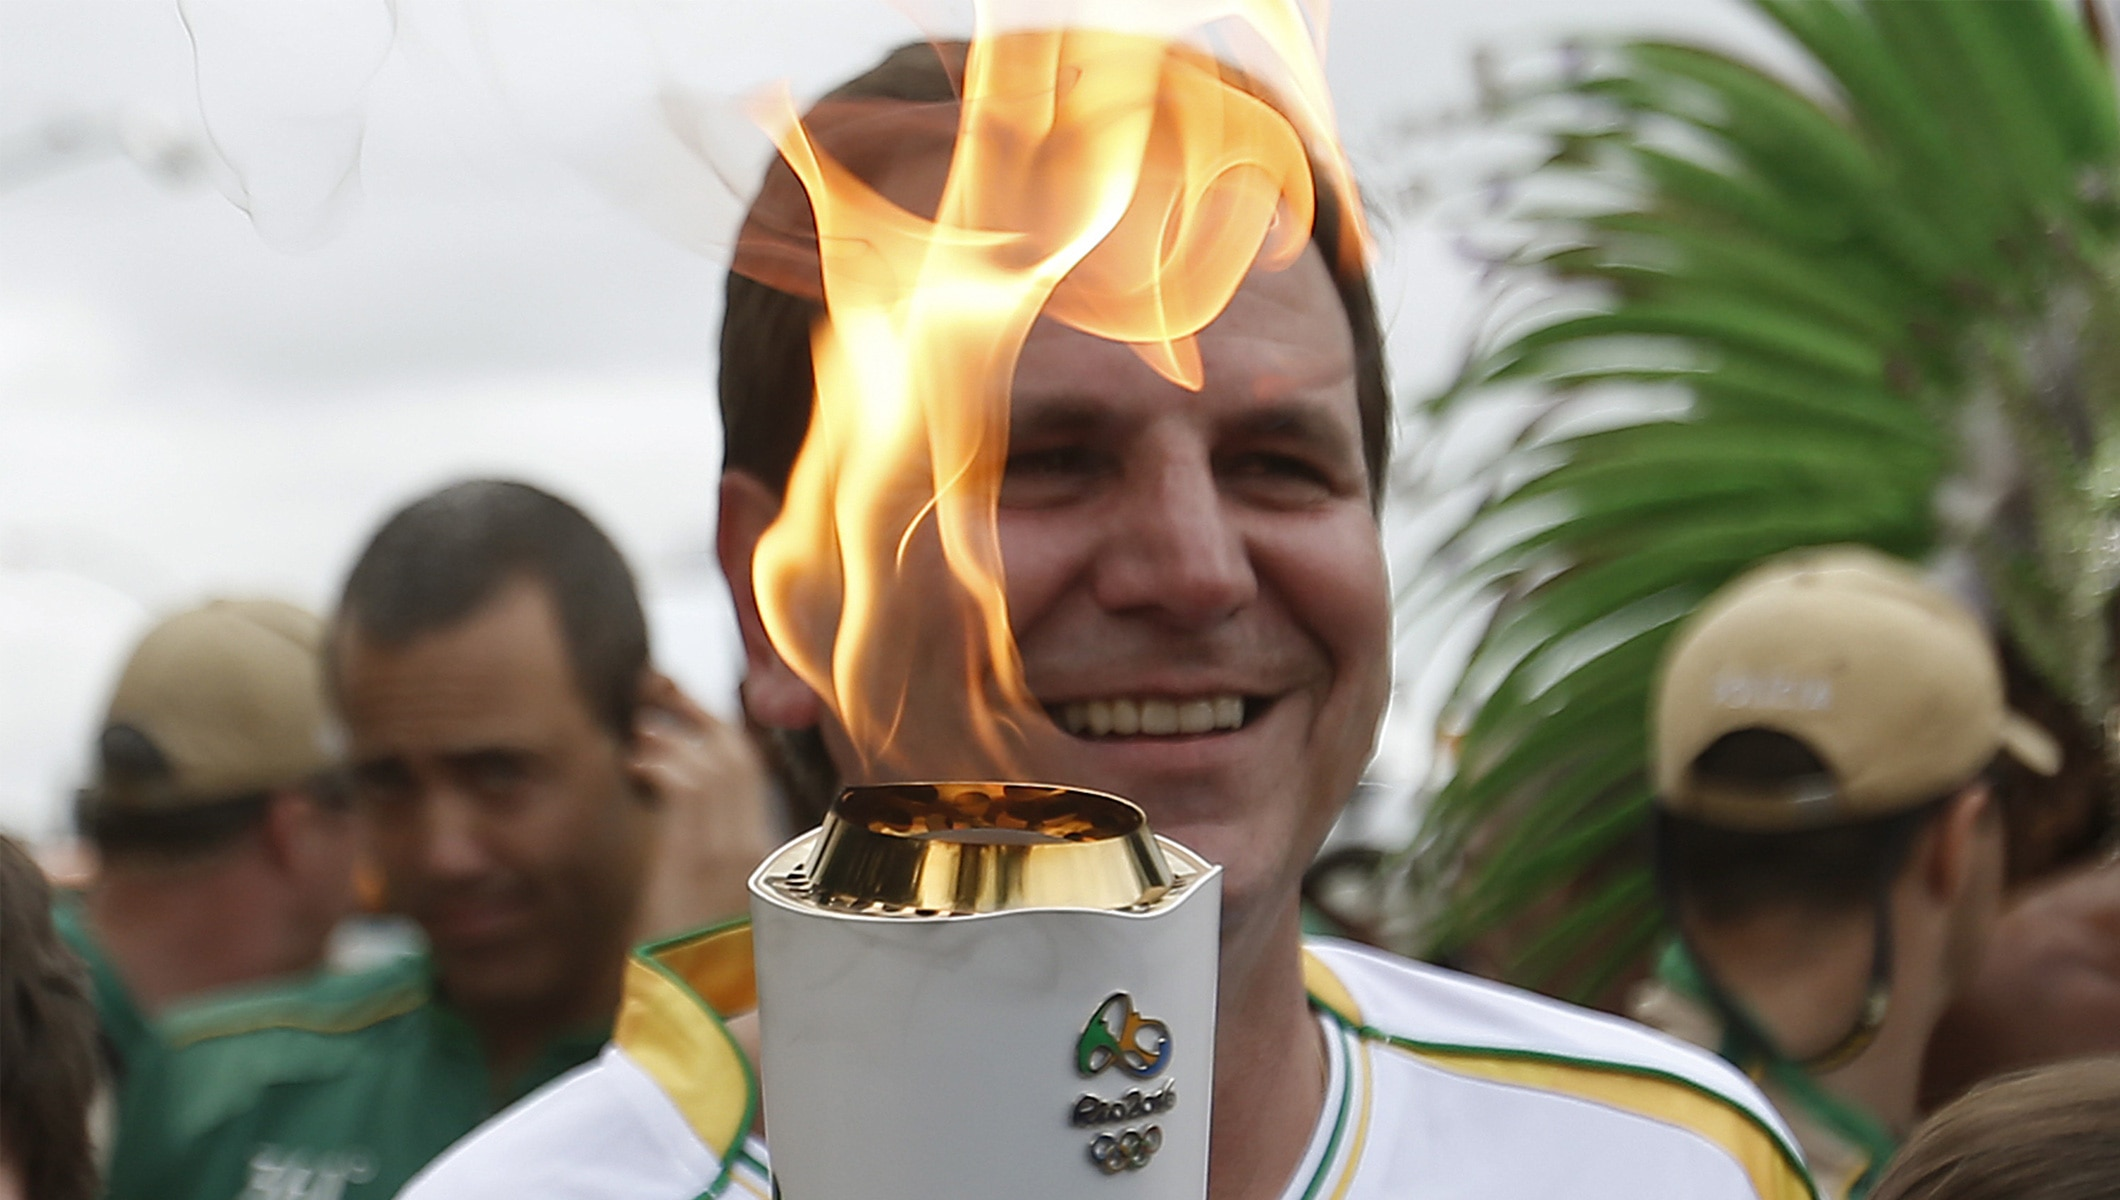 Rio 2016 Olympic Torch Relay - Day 93